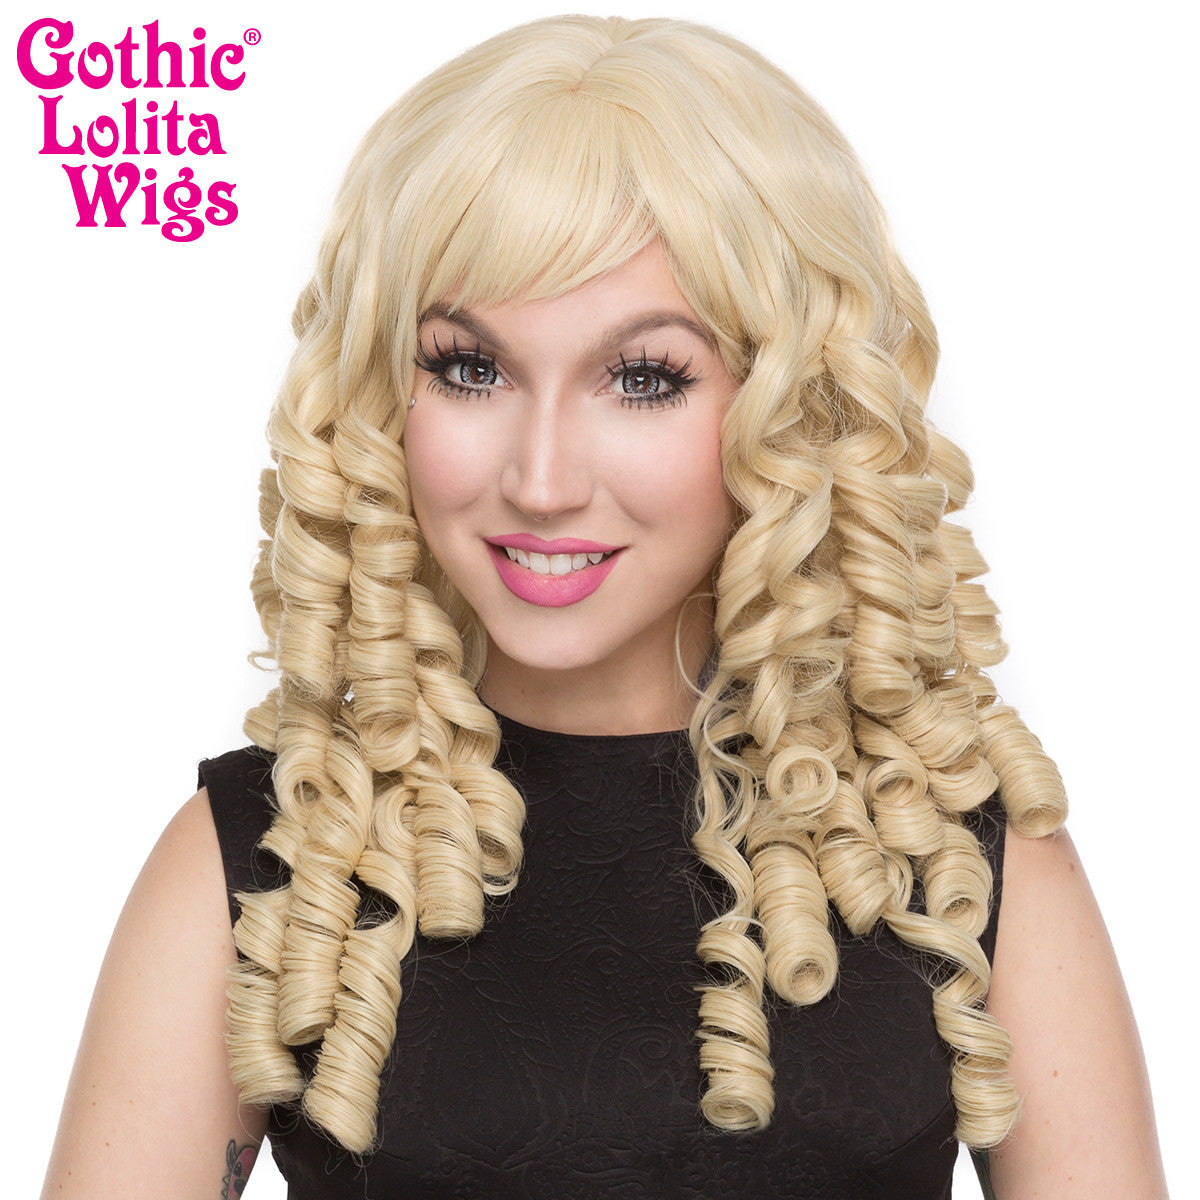 Gothic Lolita Wigs 174 Ringlet Redux Collection Blonde